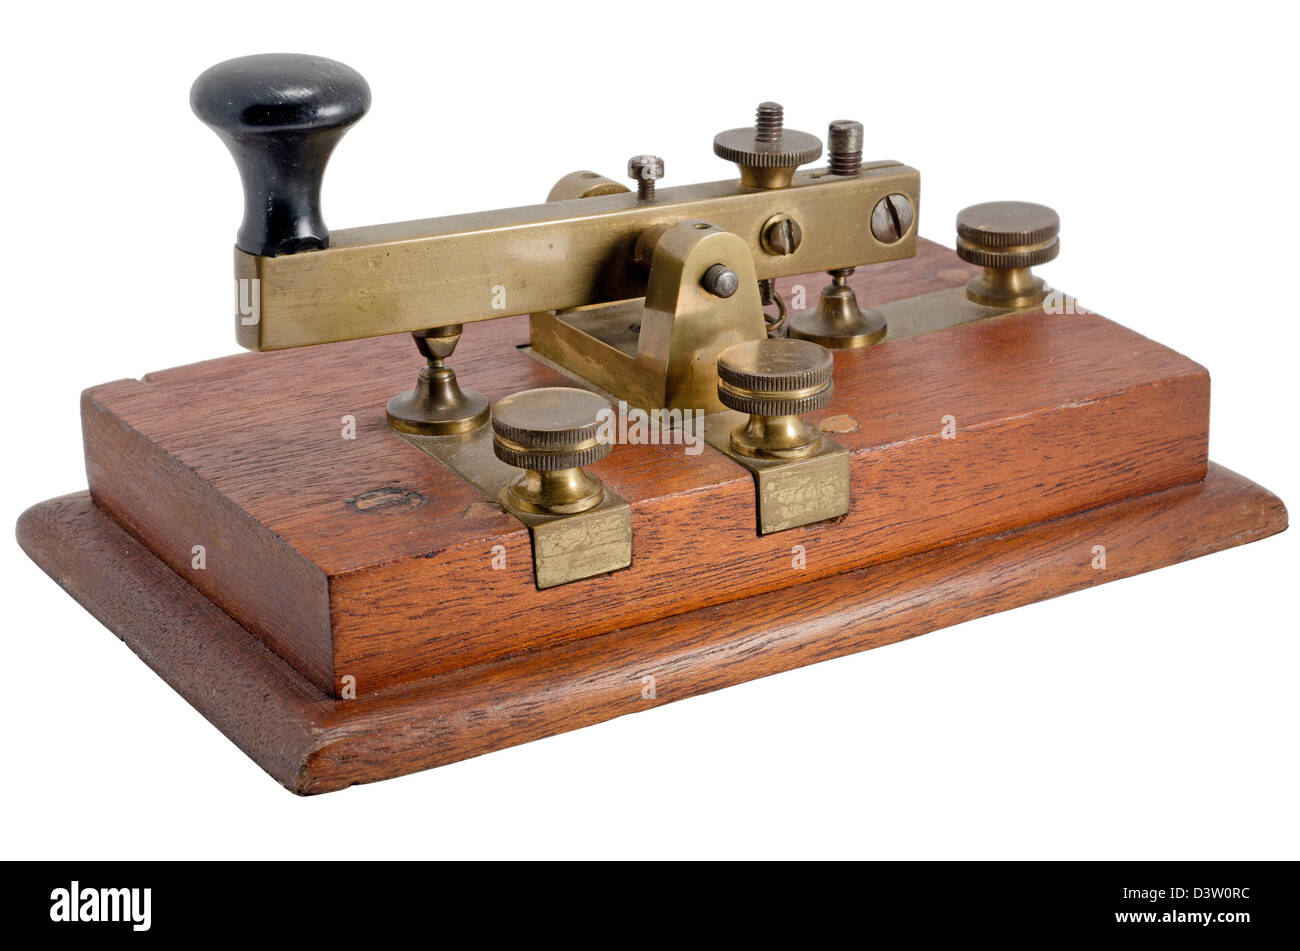 Morse Code Key Stock Photos & Morse Code Key Stock Images